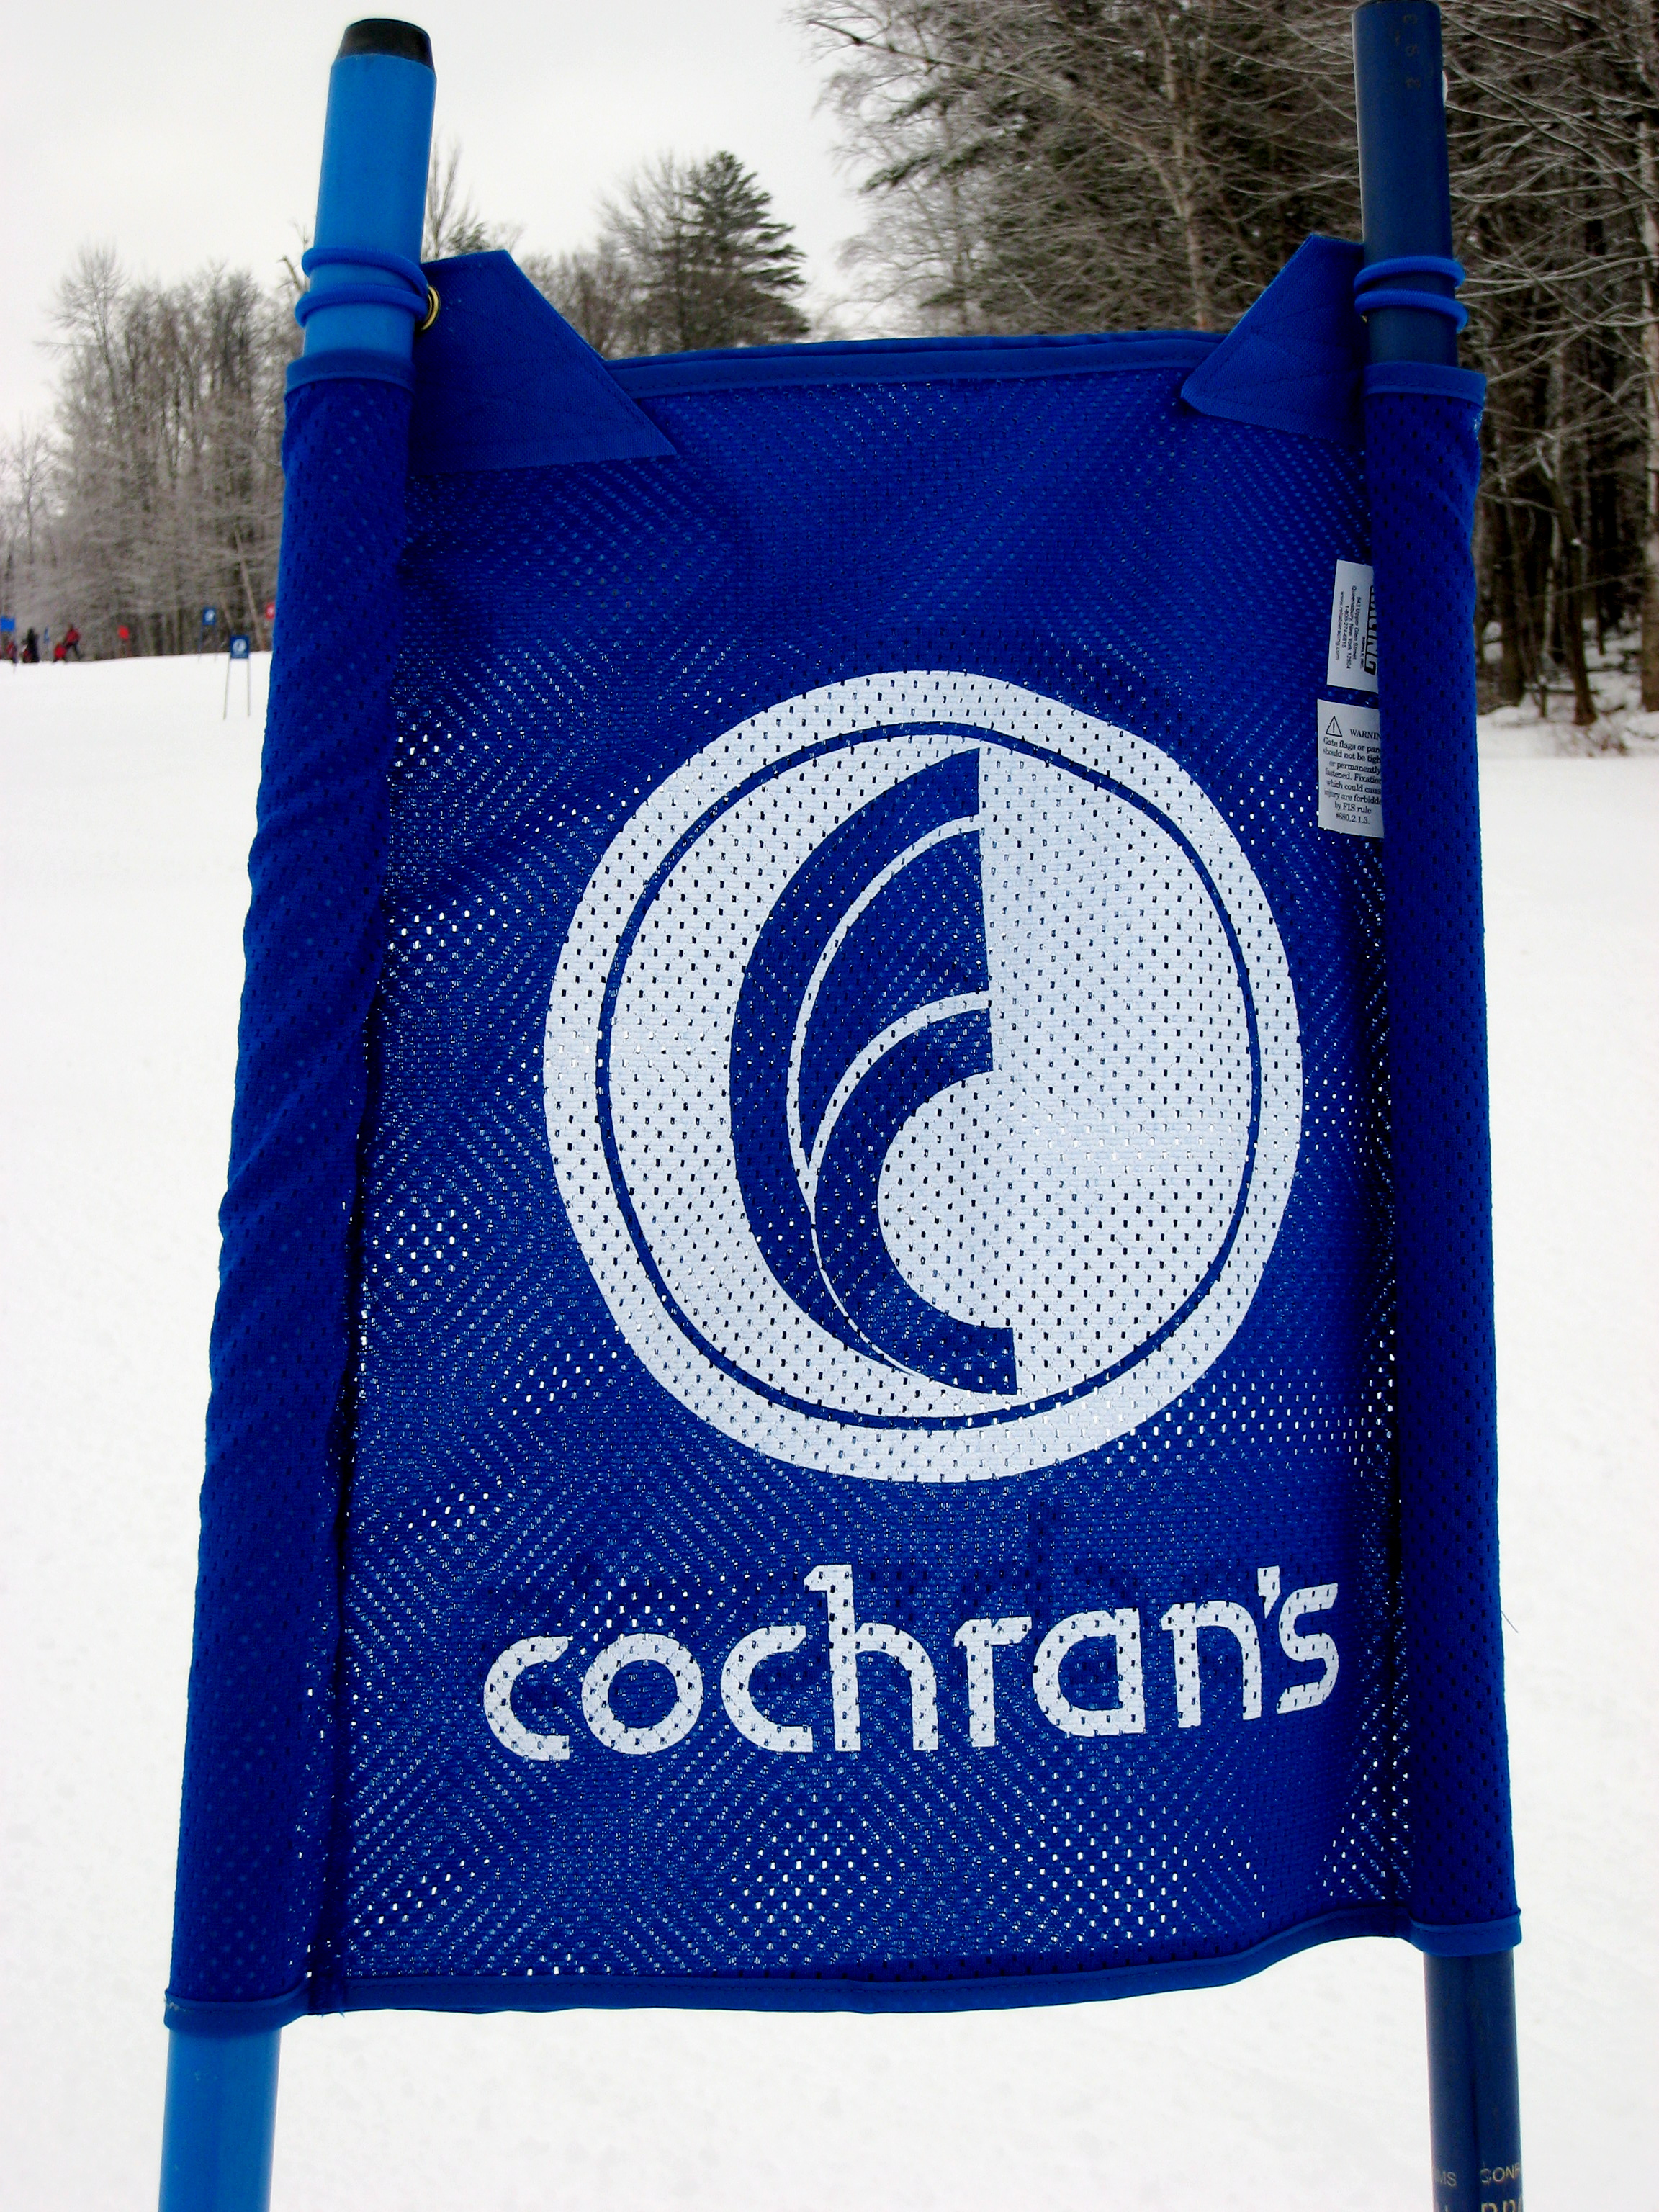 Cochrans Ski Racing